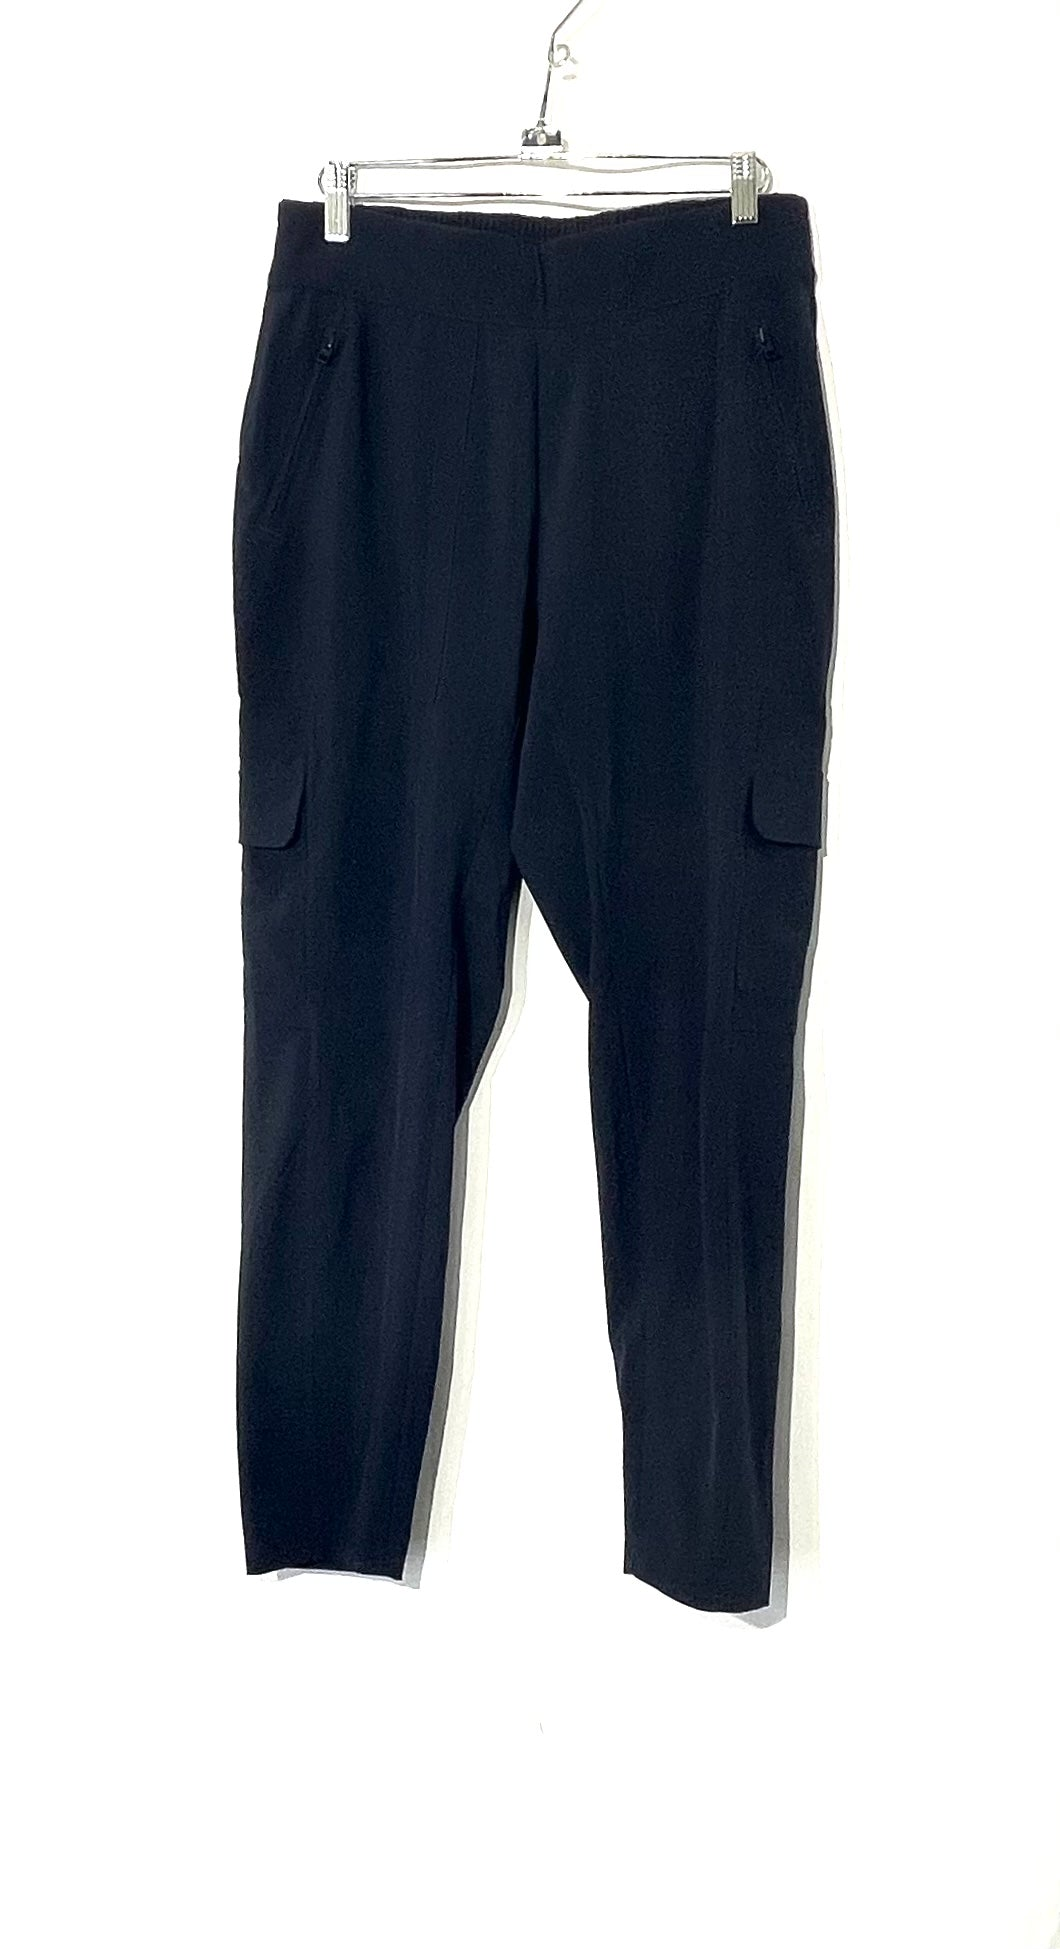 Primary Photo - BRAND: ATHLETA <BR>STYLE: ATHLETIC PANTS <BR>COLOR: NAVY <BR>SIZE: 6 <BR>SKU: 262-26275-73454